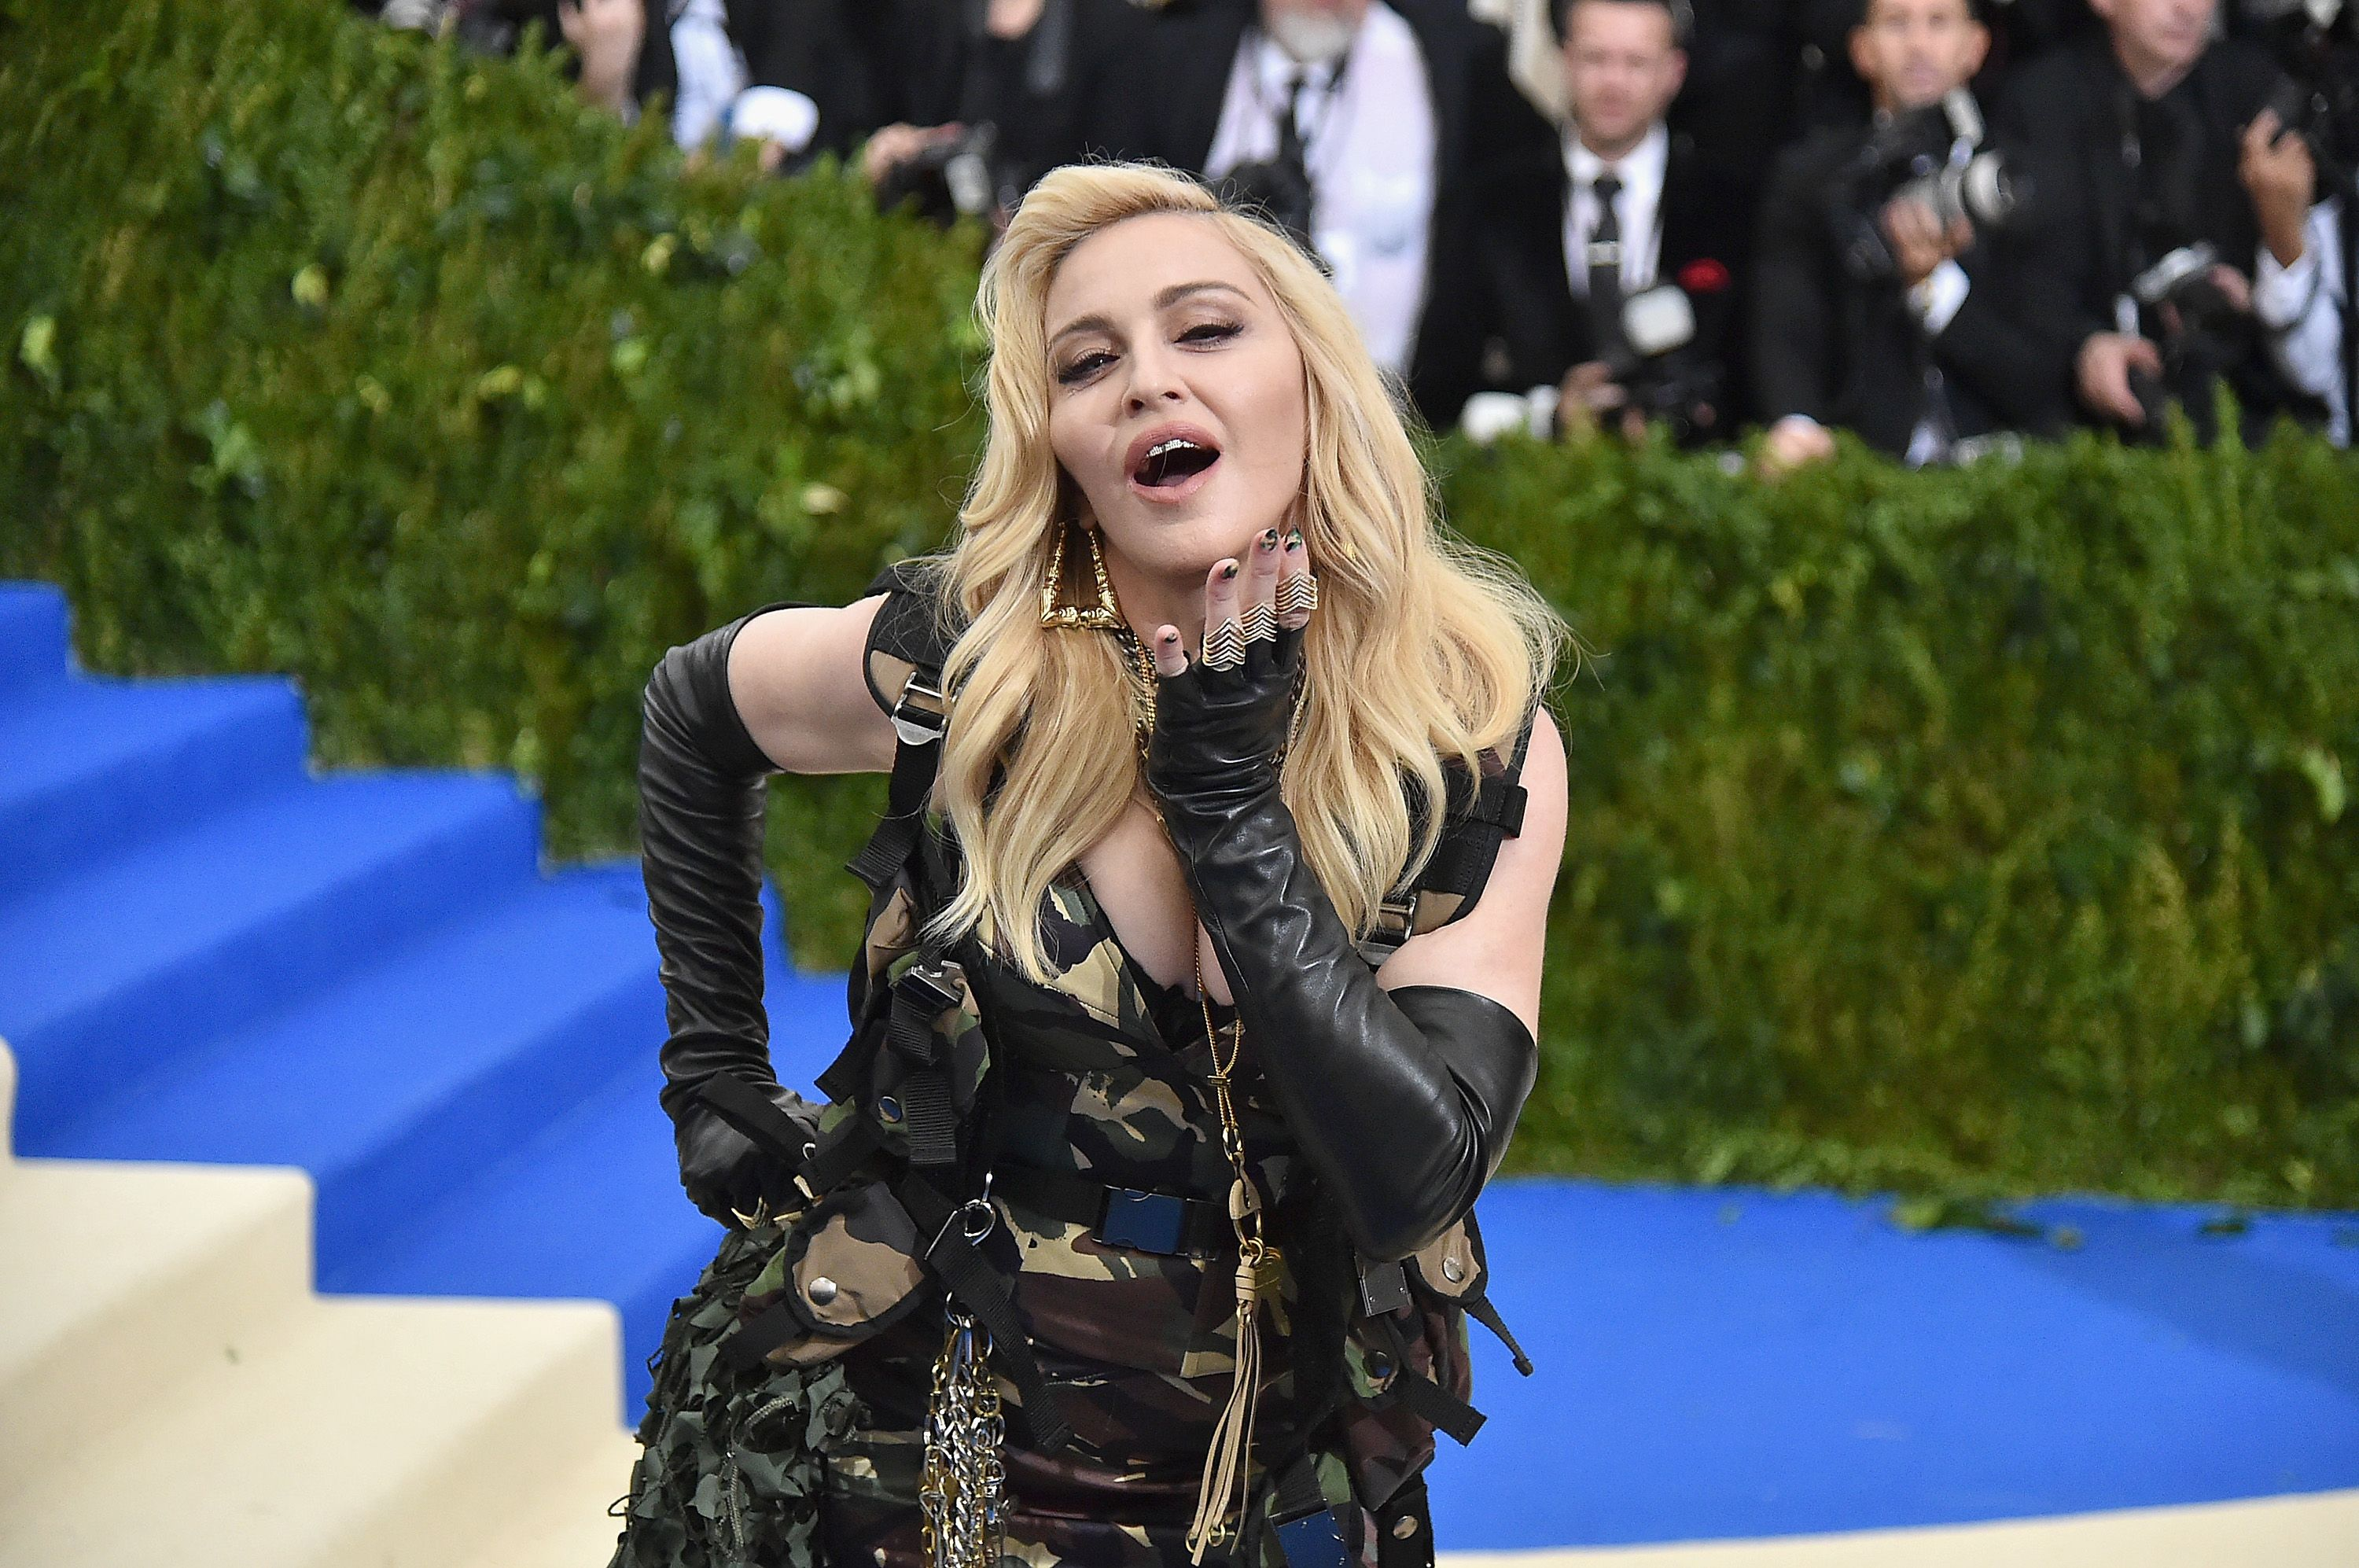 Madonna at the Costume Institute Gala at the Metropolitan Museum of Art in 2017 in New York City | Source: Getty Images